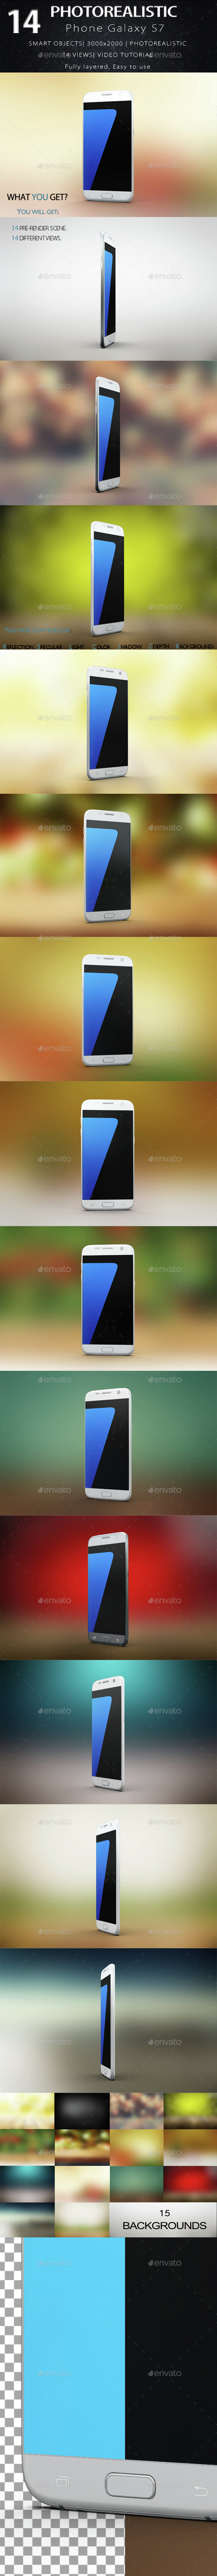 Smartphone Galaxy s7 Mock Up - Product Mock-Ups Graphics